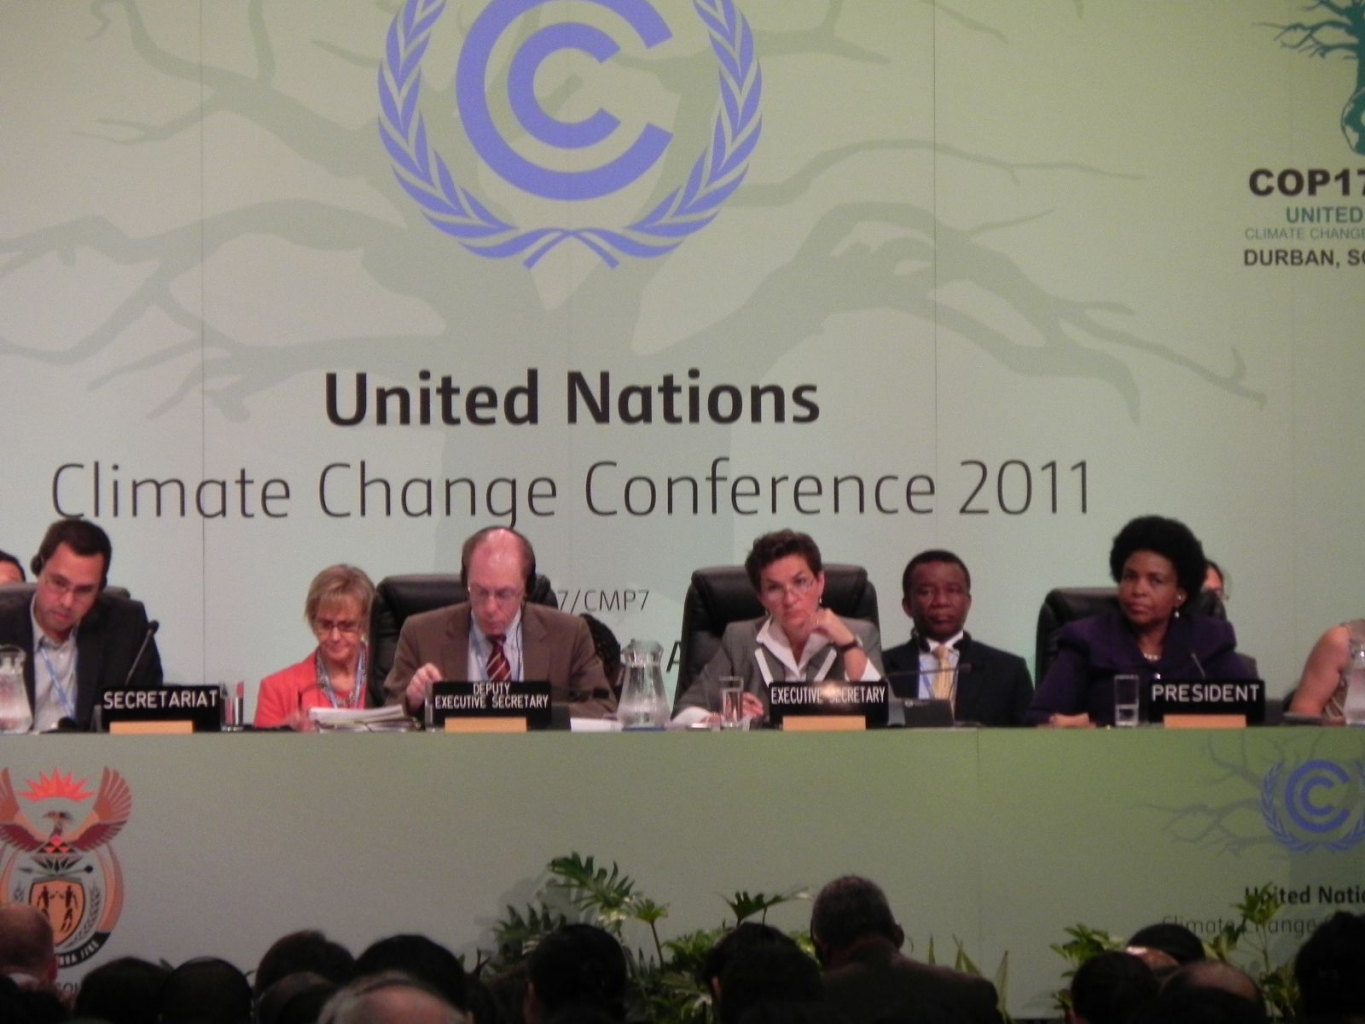 Caritas lobbies G77 bloc at Durban climate talks